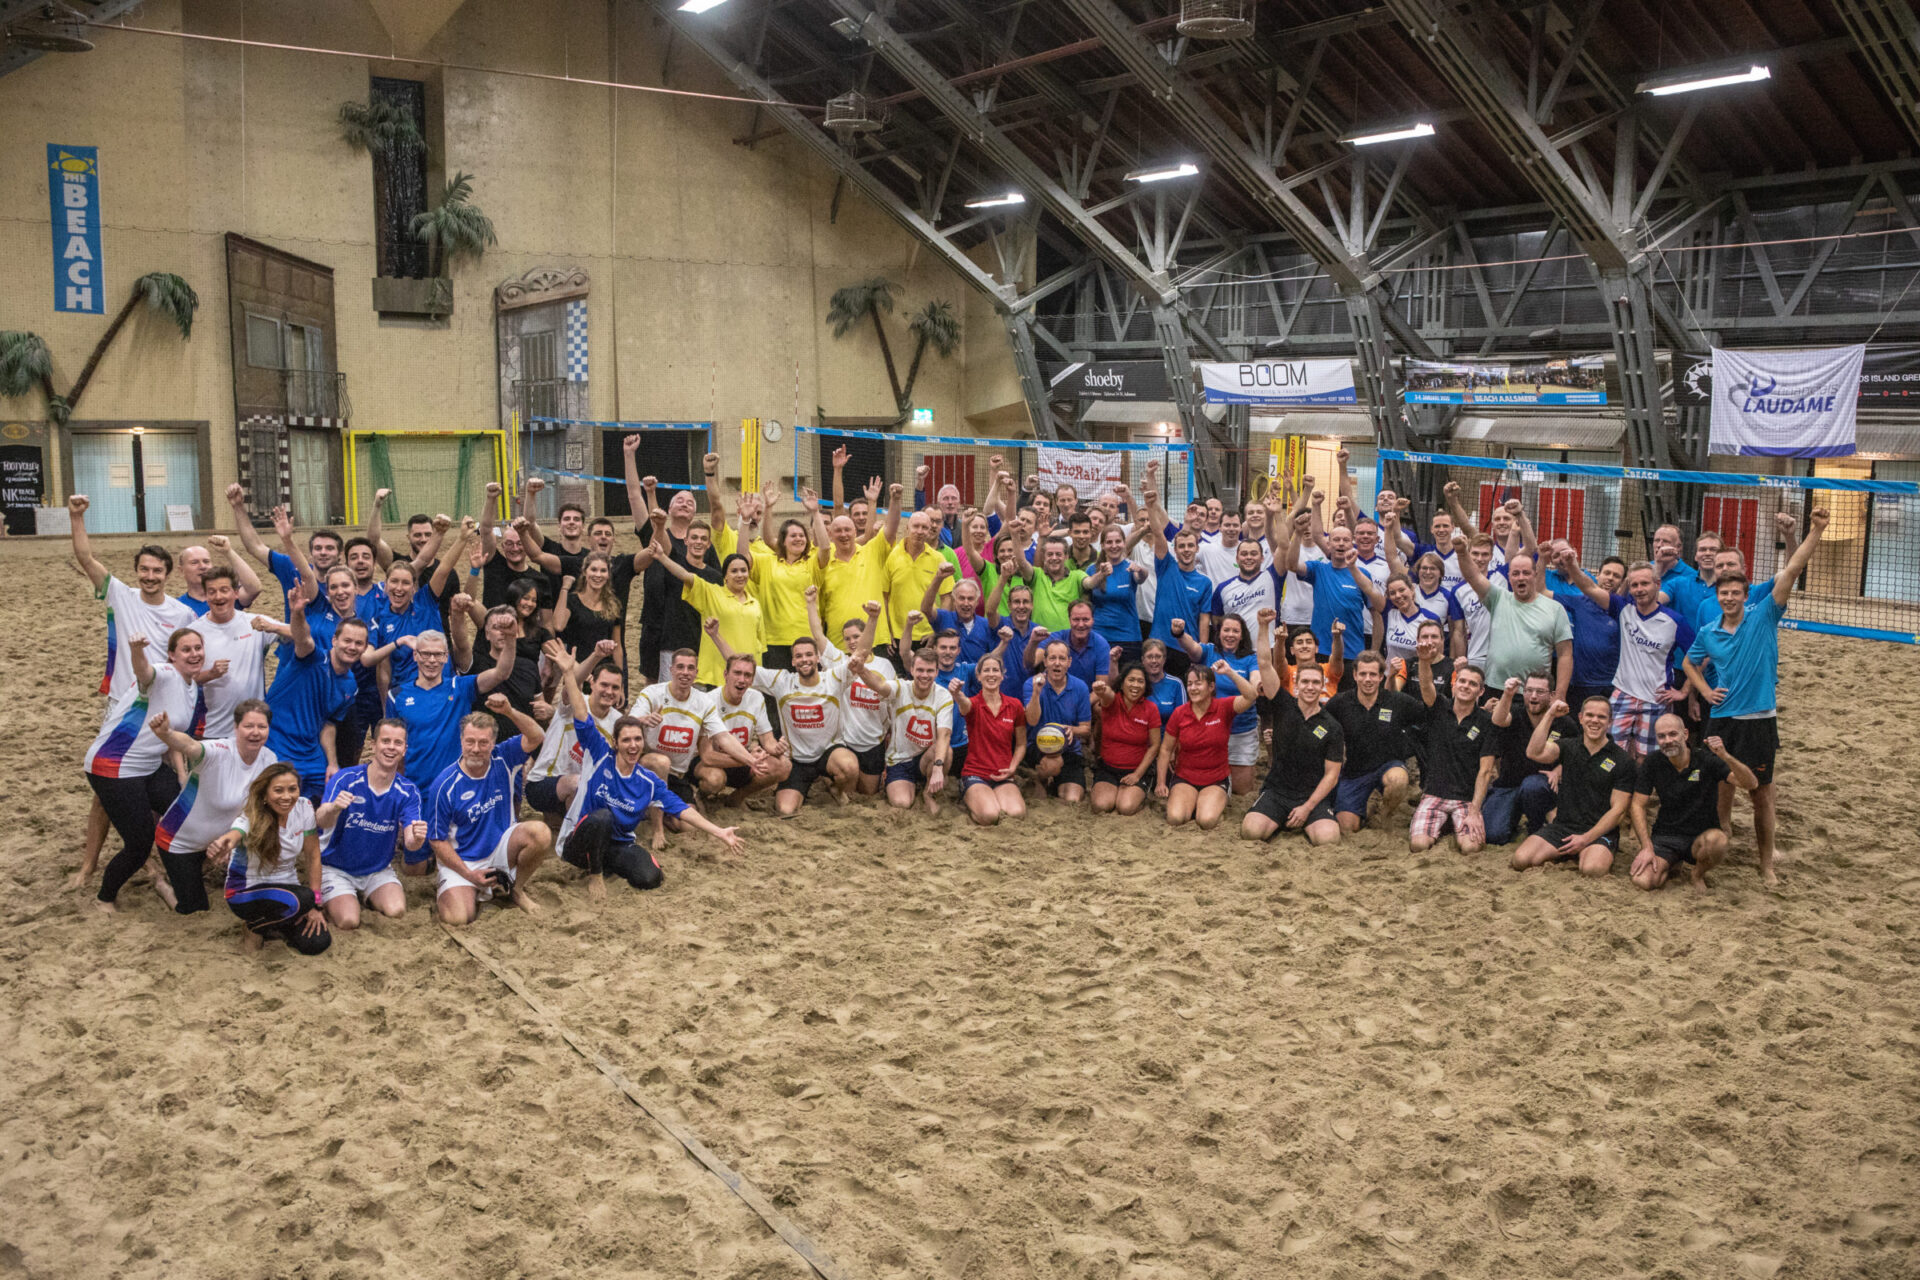 Beachvolleybaltoernooi Laudame Financials 2019